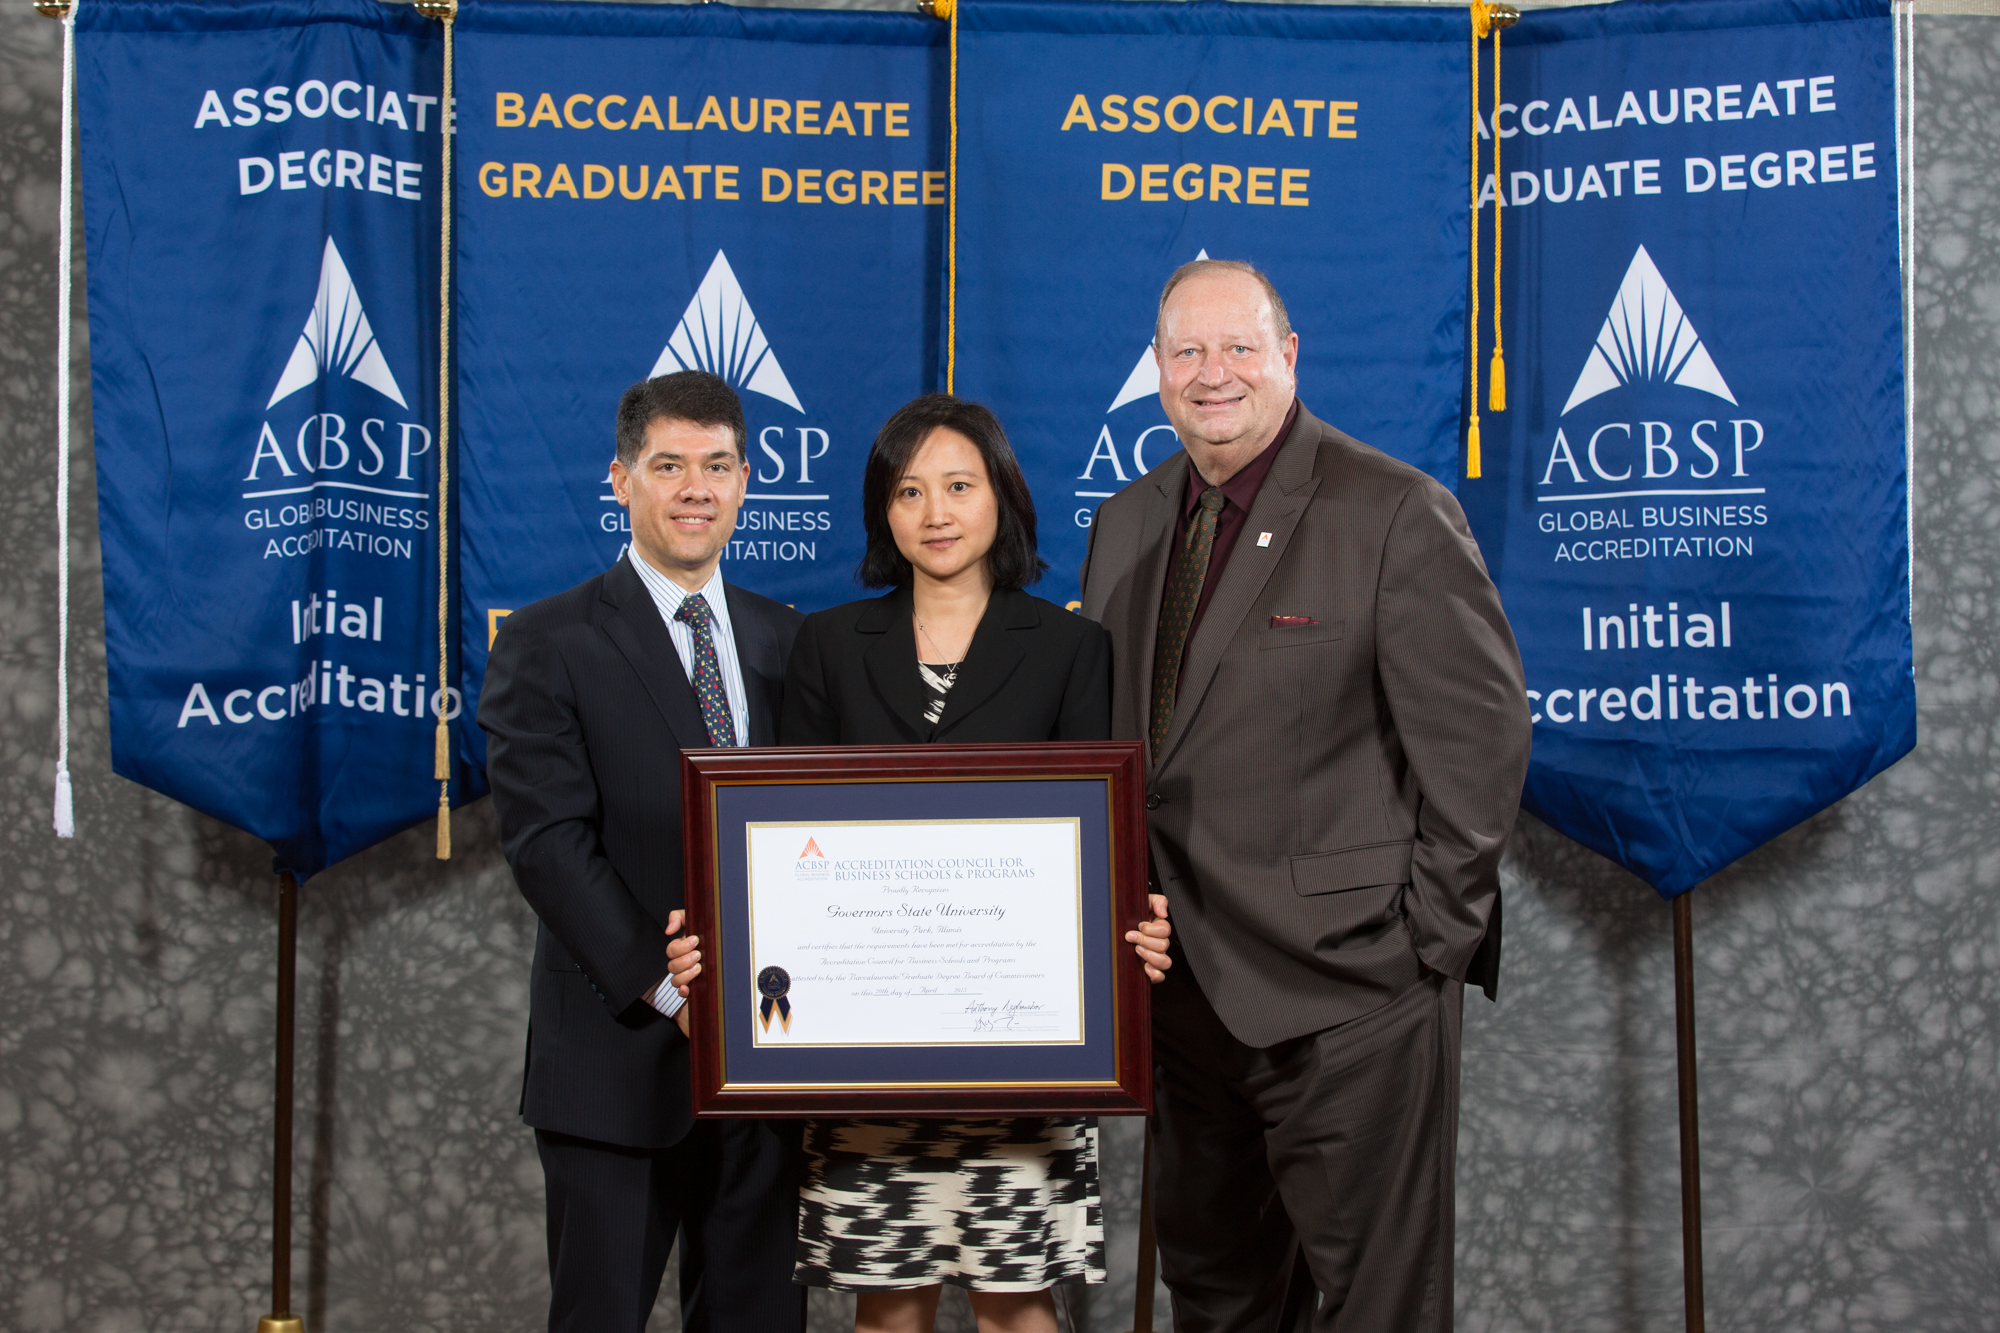 ACBSP Accreditation Reaffirmed Through 2025